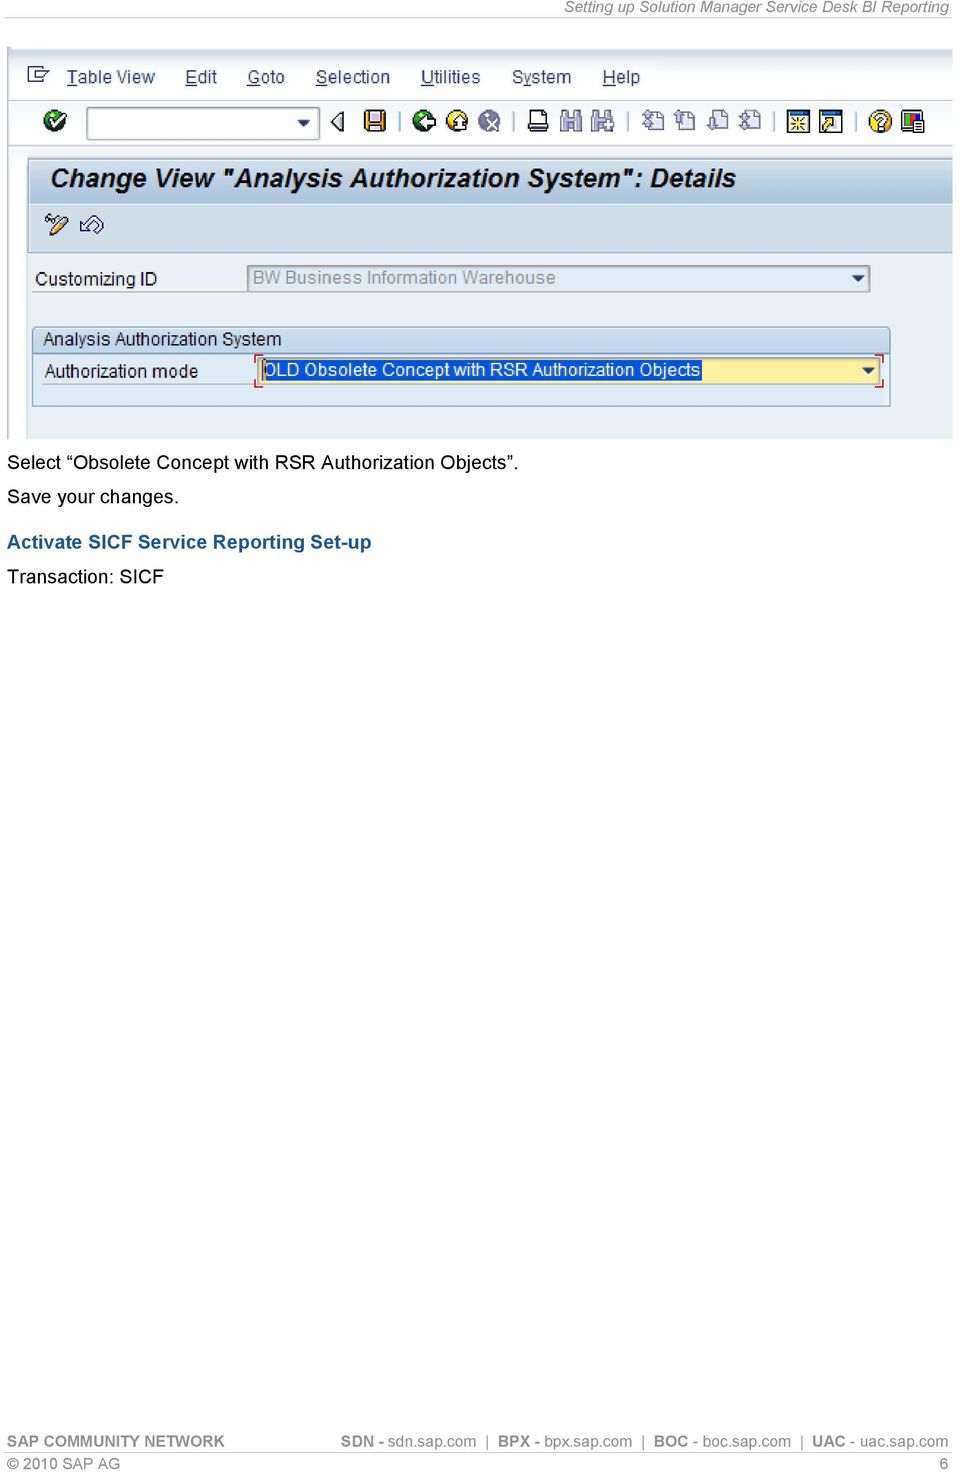 Setting up Solution Manager Service Desk BI Reporting - PDF